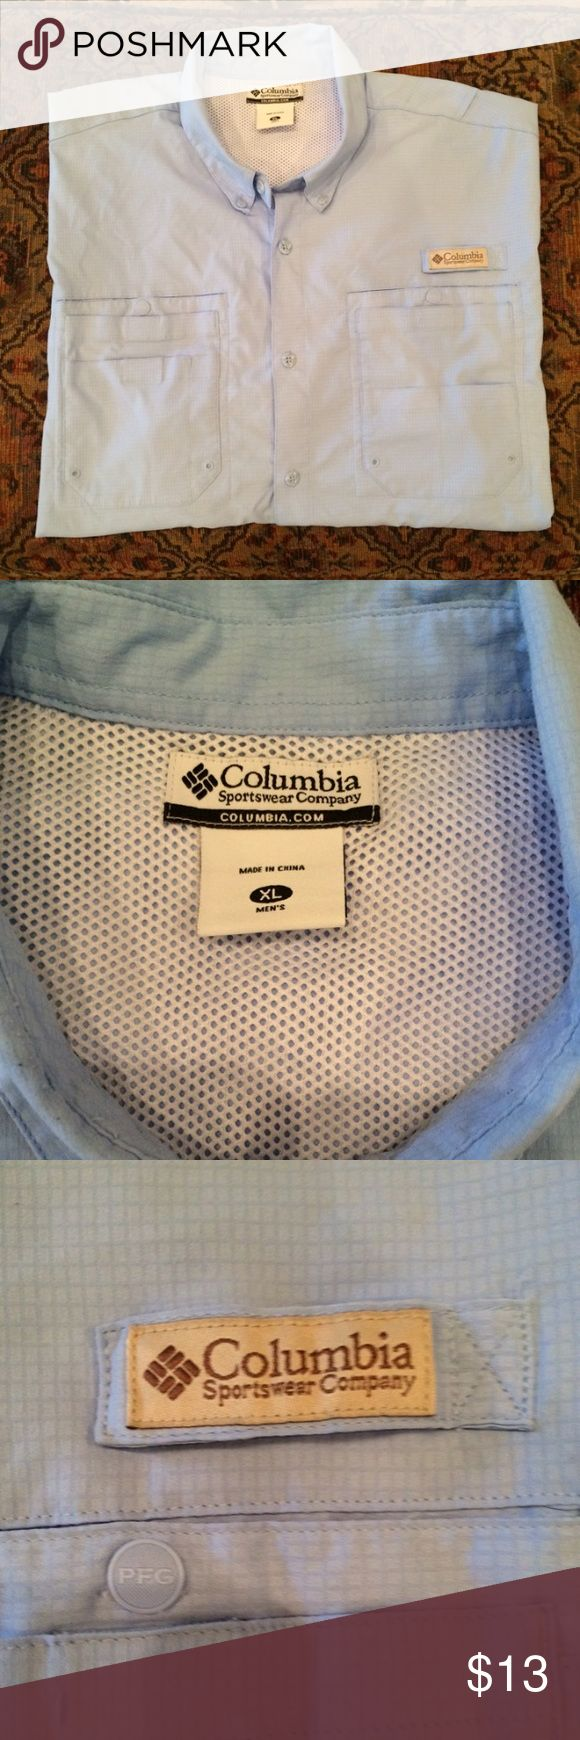 Men's Columbia PFG Shirt Excellent condition; light blue in color. Cheaper on Merc. Columbia Shirts Casual Button Down Shirts